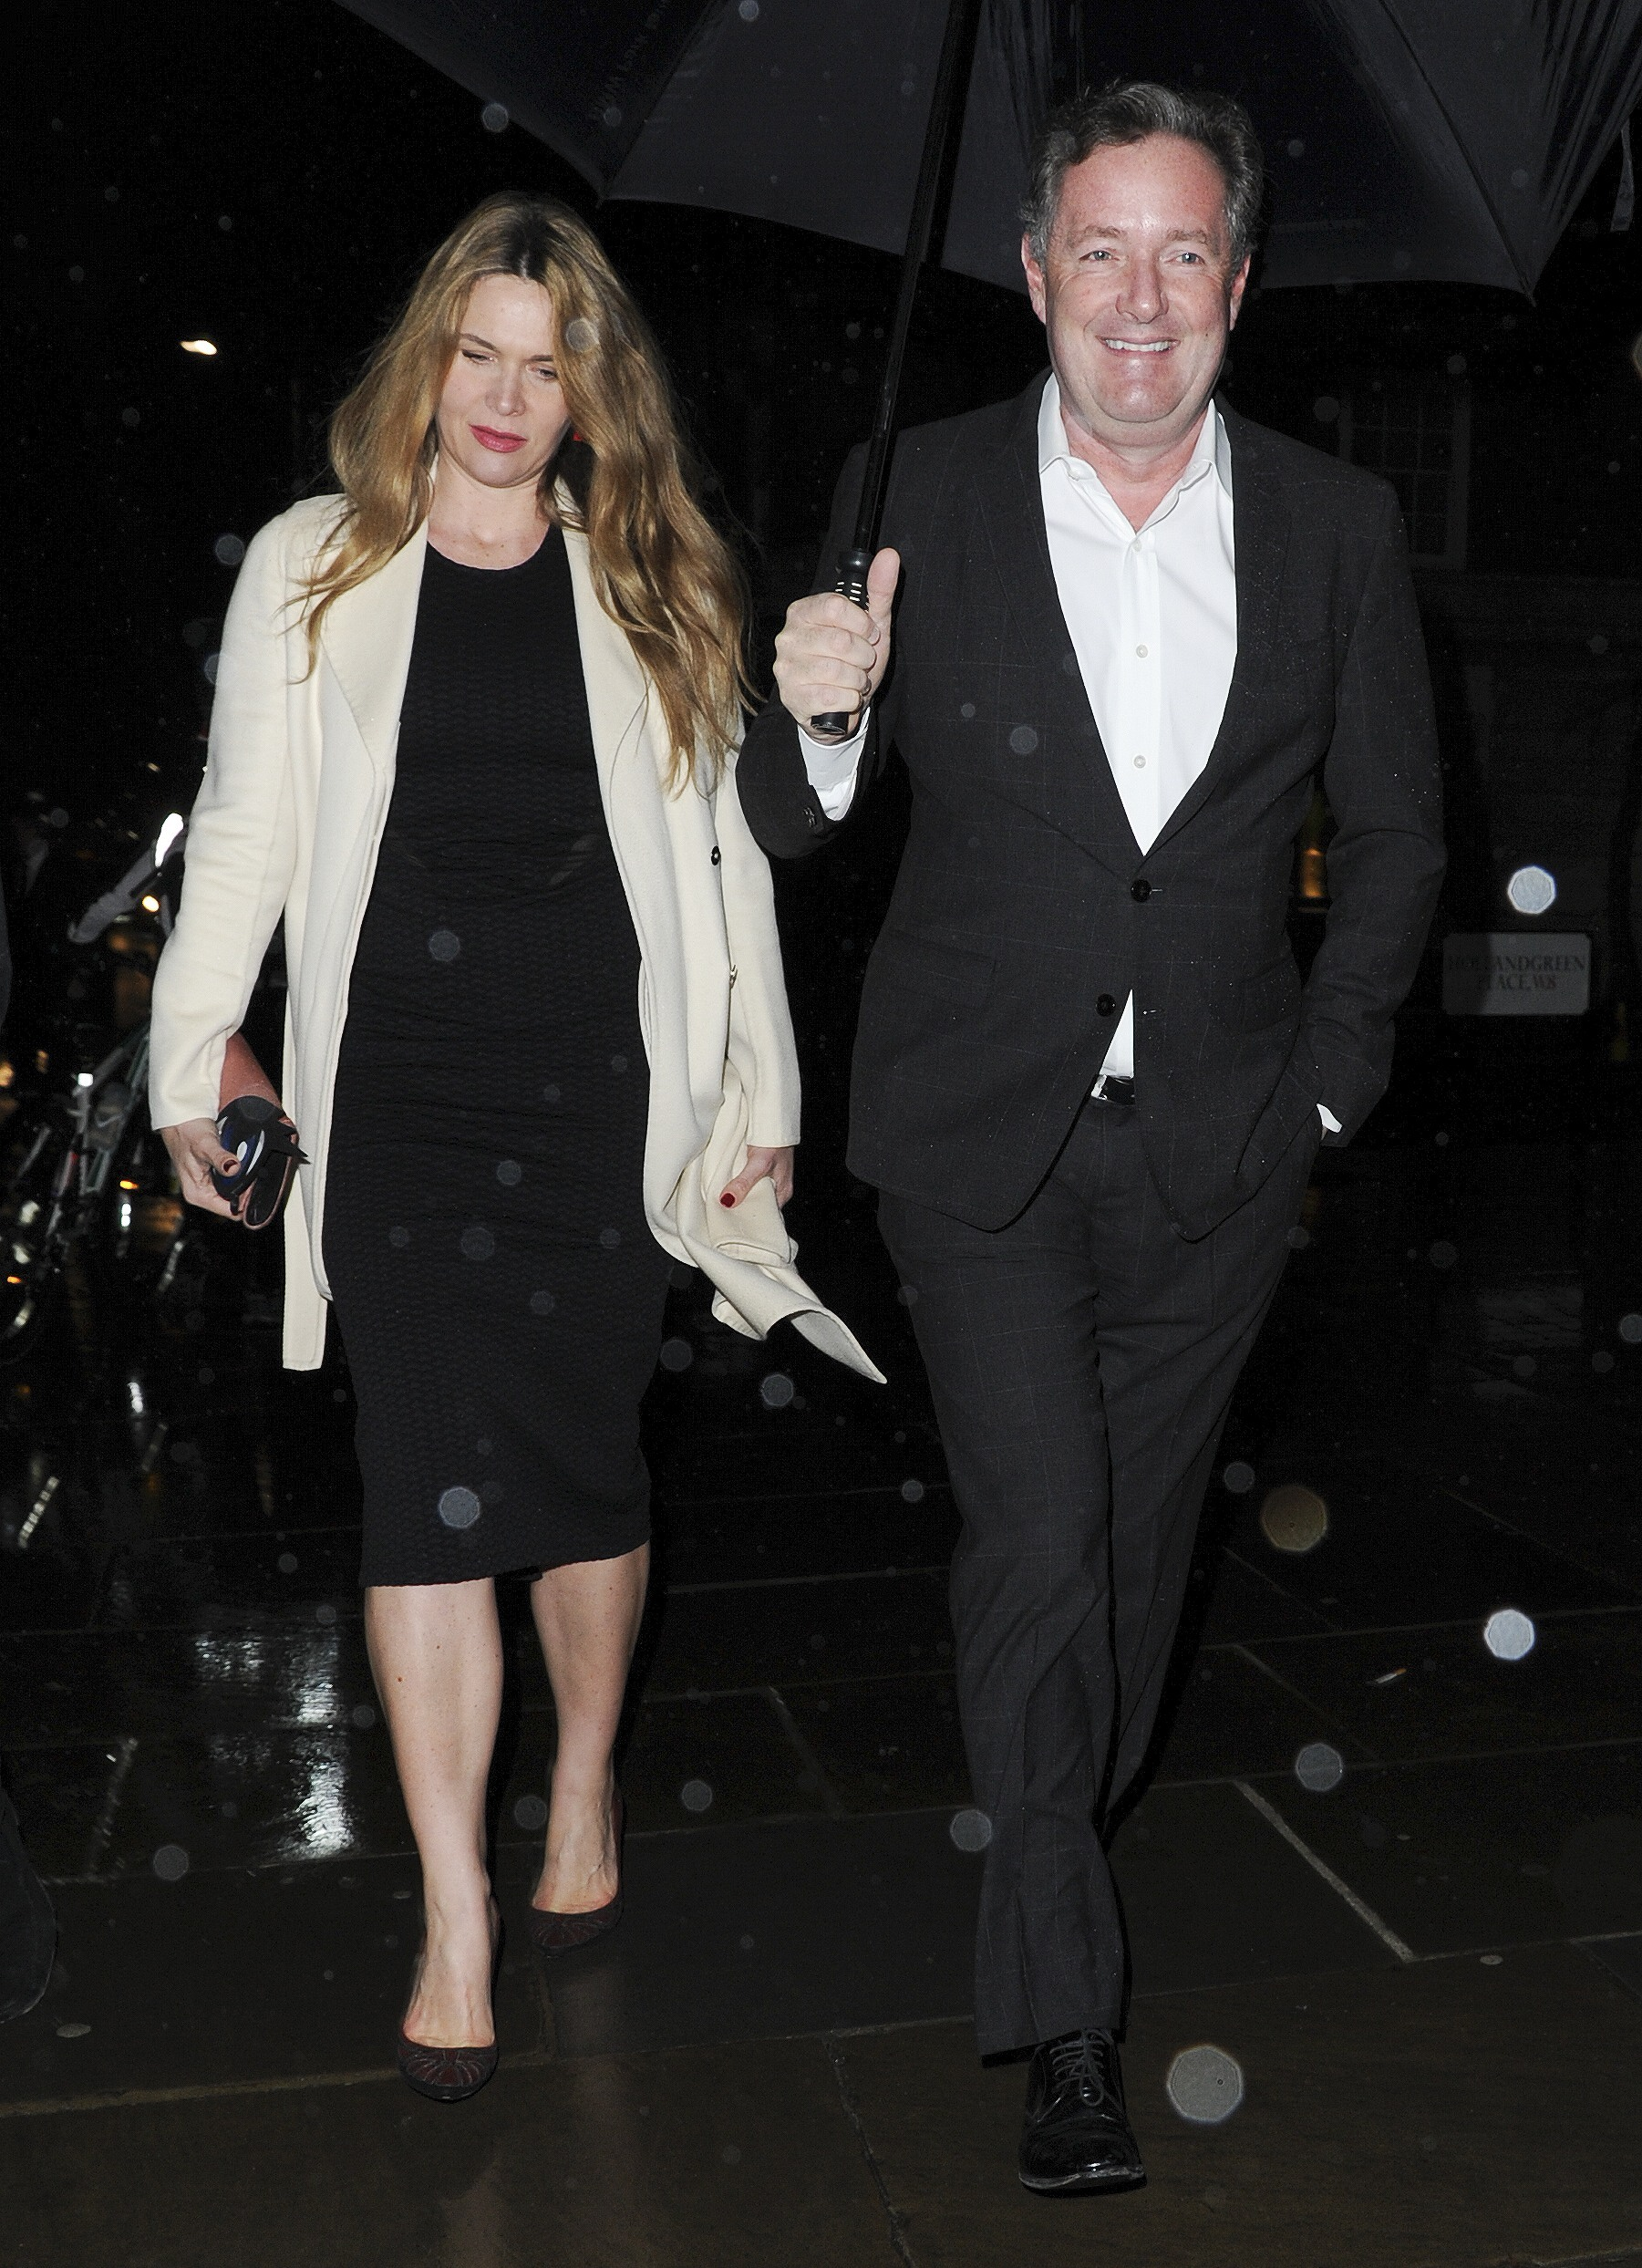 Celebrities seen arriving at the Range Rover Velar Global Reveal at The Design Museum in London, UK. WORLDWIDE RIGHTS Pictured: Celia Walden,Piers Morgan Ref: SPL4173369 020317 NON-EXCLUSIVE Picture by: MBPICS / FameFlynet.uk.com / SplashNews.com Splash News and Pictures Los Angeles: 310-821-2666 New York: 212-619-2666 London: +44 (0)20 7644 7656 Berlin: +49 175 3764 166 photodesk@splashnews.com World Rights